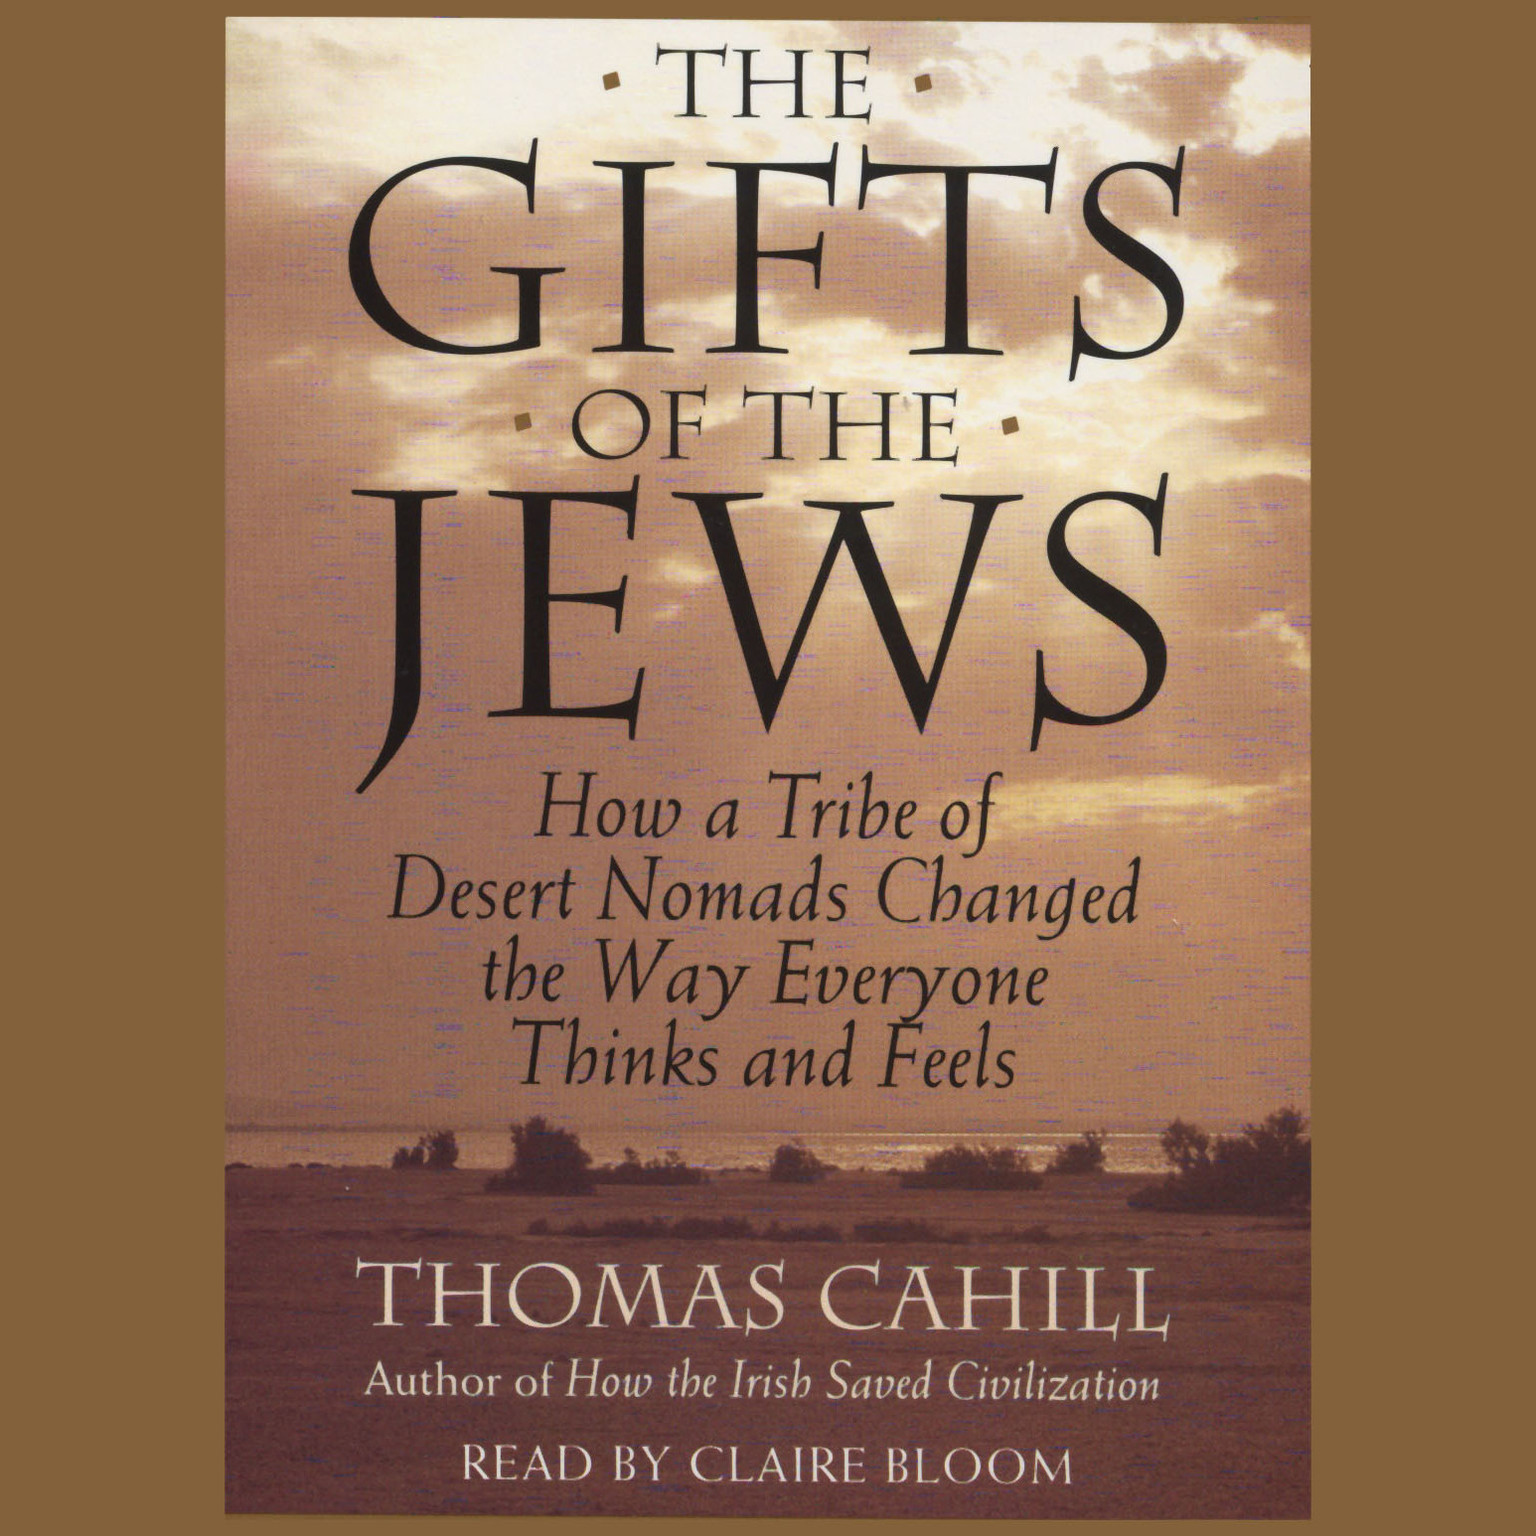 Printable The Gifts Of The Jews: How A Tribe of Desert Nomads Changed the Way Everyone Thinks and Feels Audiobook Cover Art